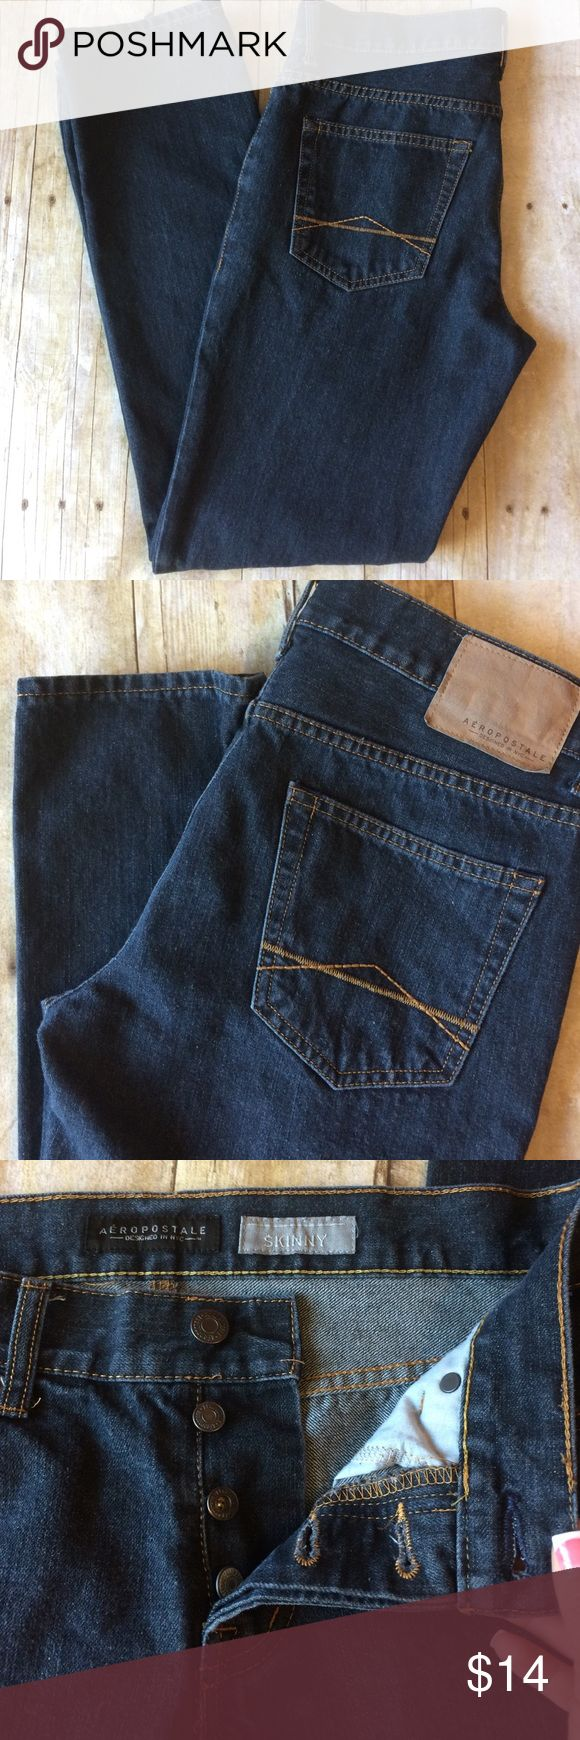 Aeropostale men's skinny jeans In good condition, sz is 30/30. Buttons instead of zipper Aeropostale Jeans Skinny